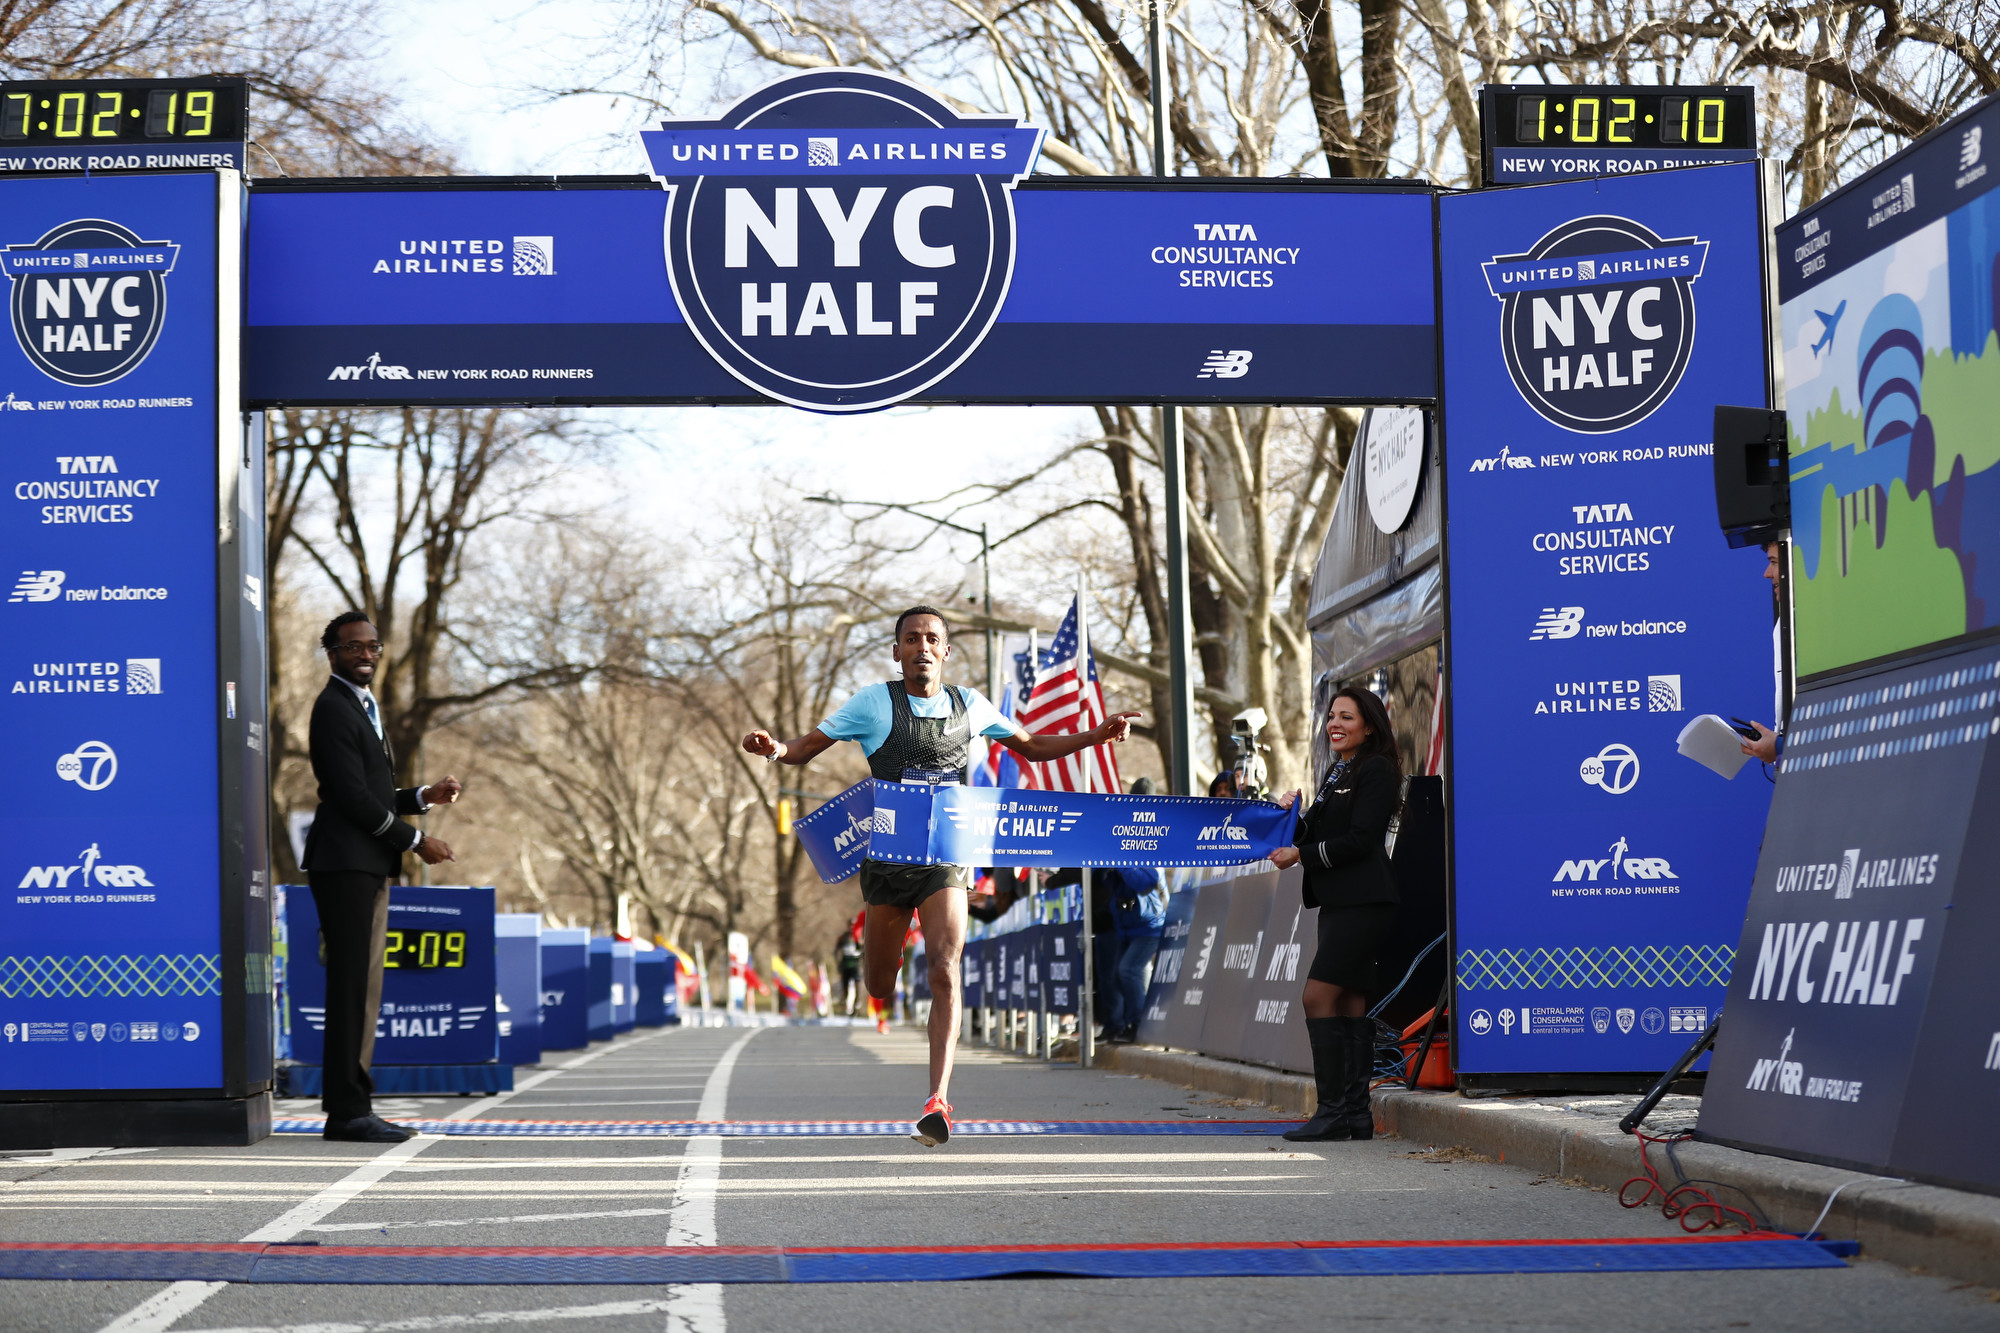 Belay Tilahun of Ethiopia and Joyciline Jepkosgei of Kenya won their New York City racing debuts in the open division